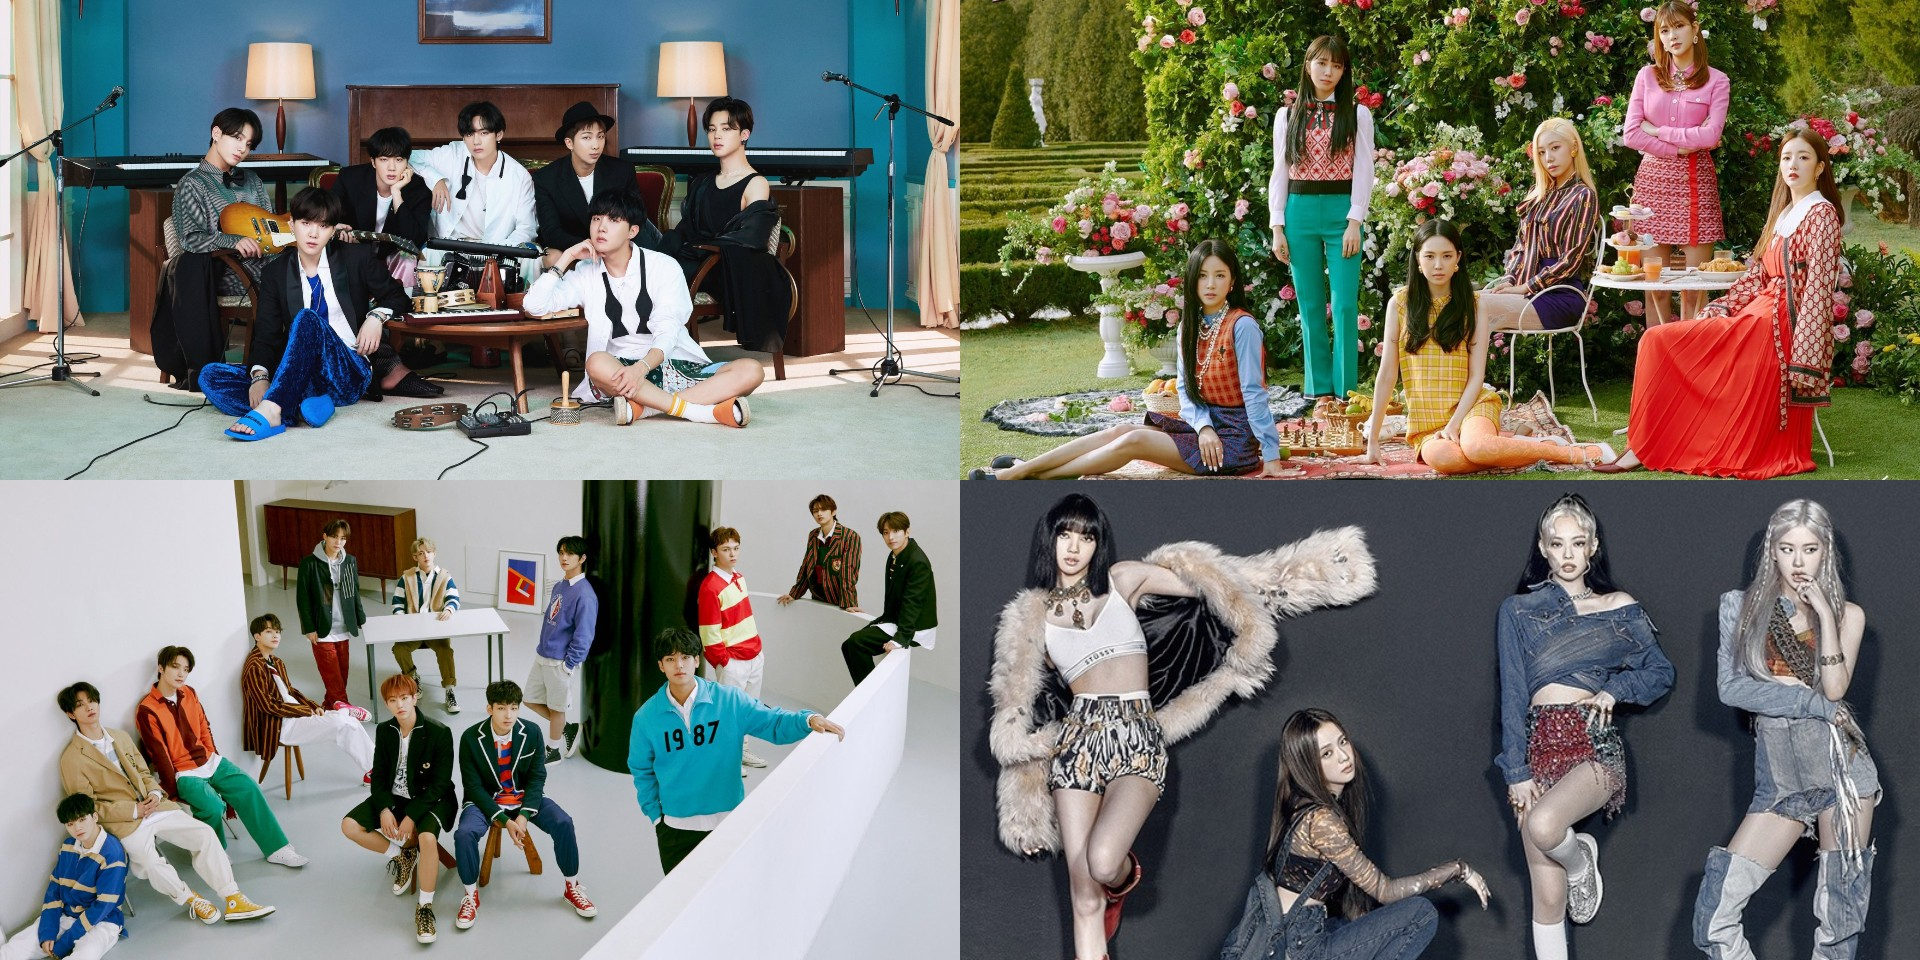 BTS, SEVENTEEN, Apink, BLACKPINK, and more nominated for Melon Music Awards 2020, BTS to perform